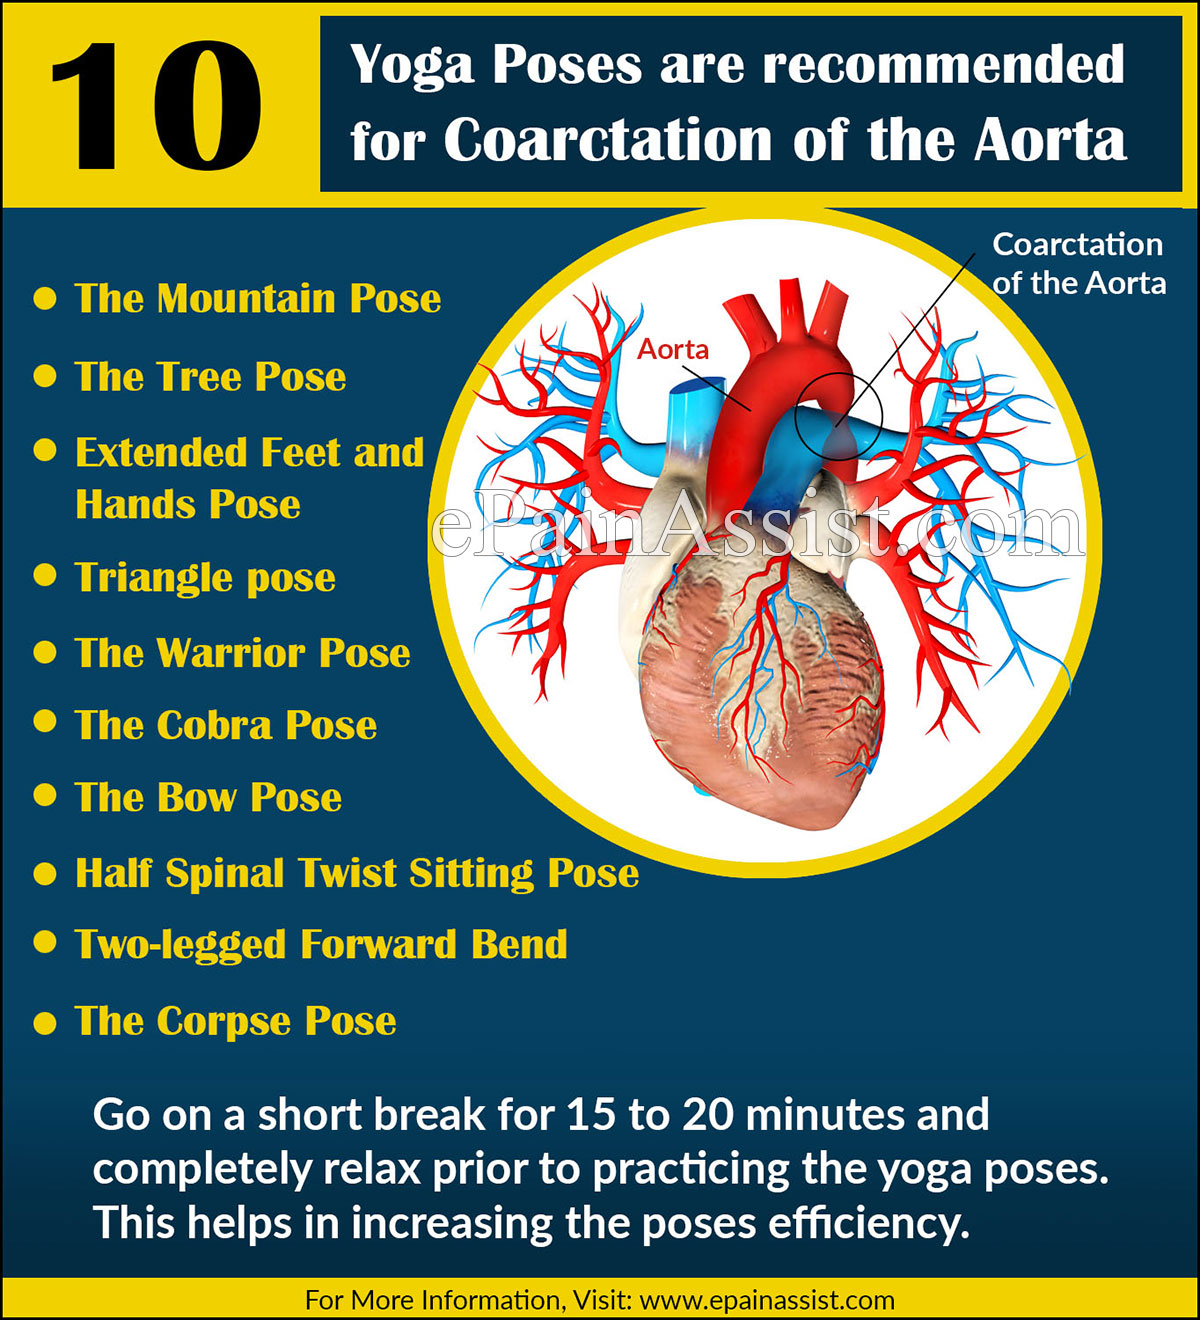 Yoga Poses or Asanas are recommended for Coarctation of the Aorta (COA) or Aortic Narrowing